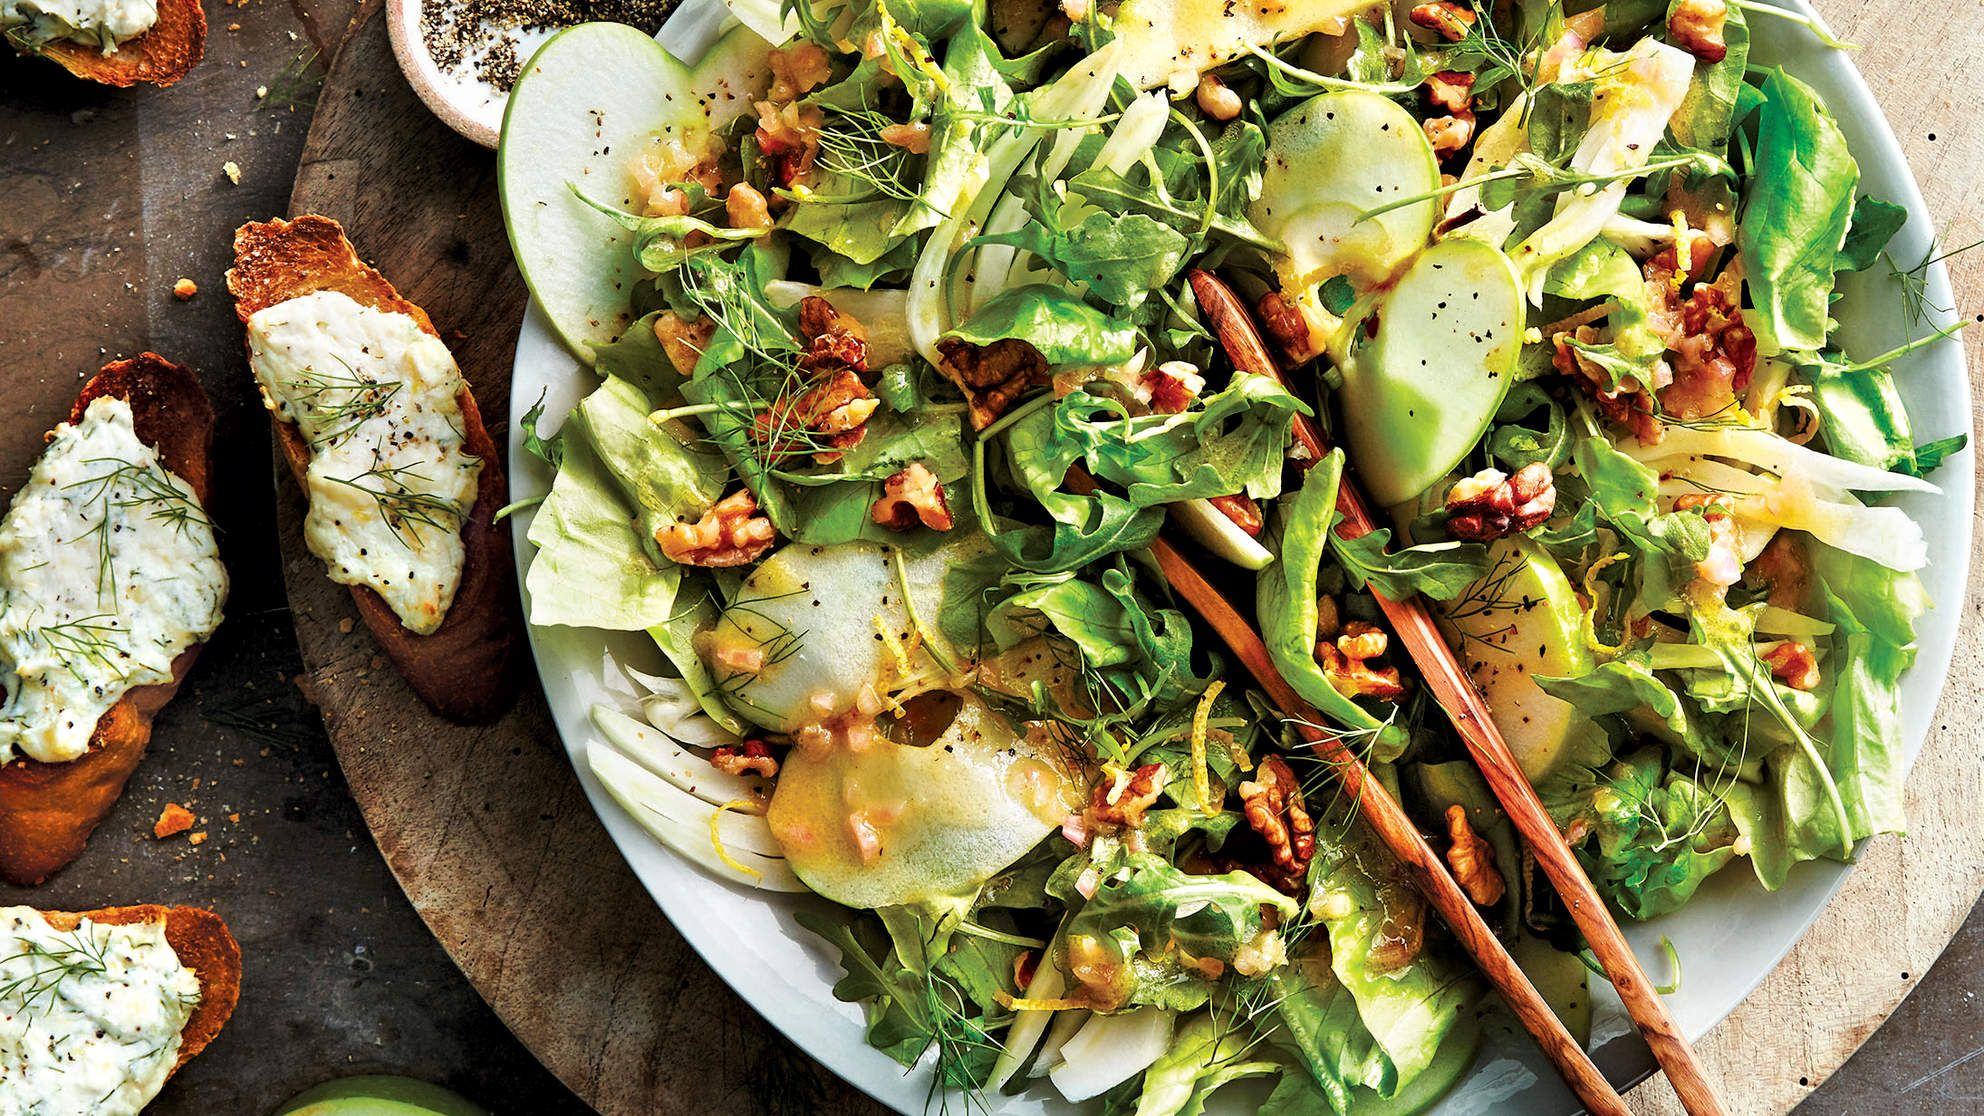 Arugula Apple And Fennel Salad With Citrus Vinaigrette This Recipe For Arugula Apple And Fennel Citrus Vinaigrette Recipe Fennel Salad Citrus Vinaigrette